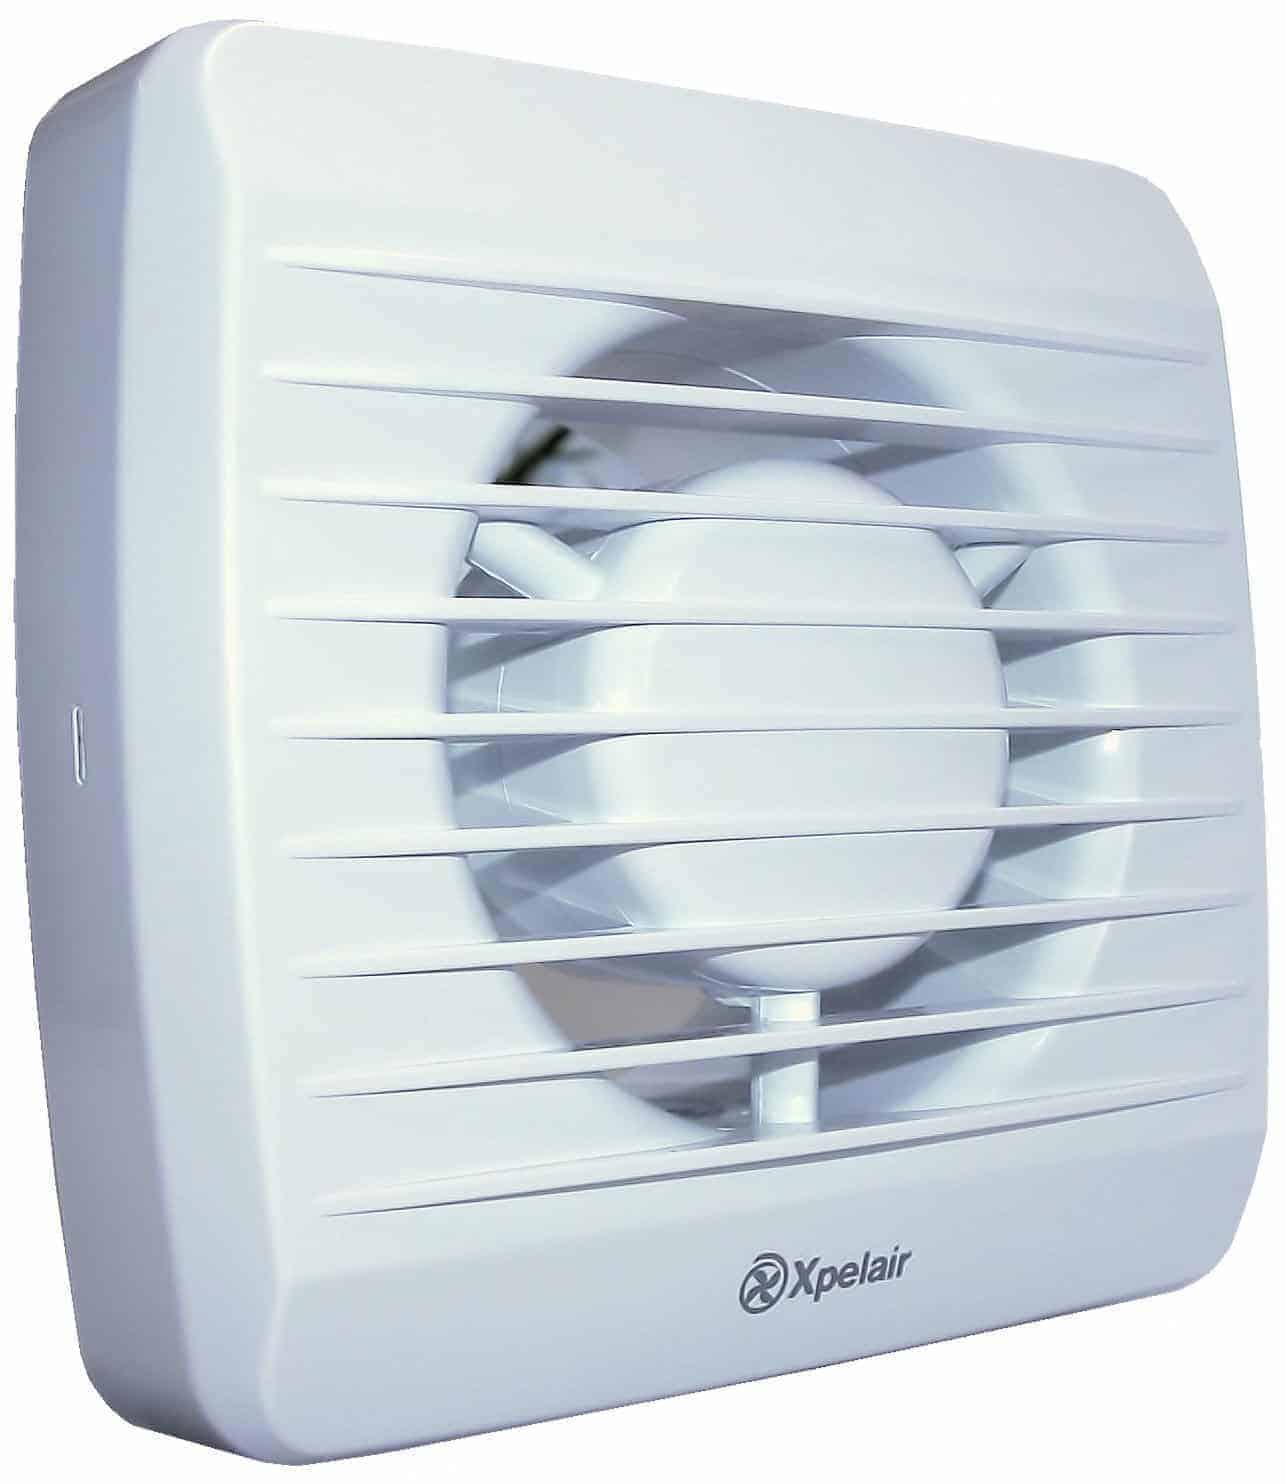 Bathroom exhaust fans ratings - With Timer Xpelair 4 Inch 100mm Timer Bathroom Fan